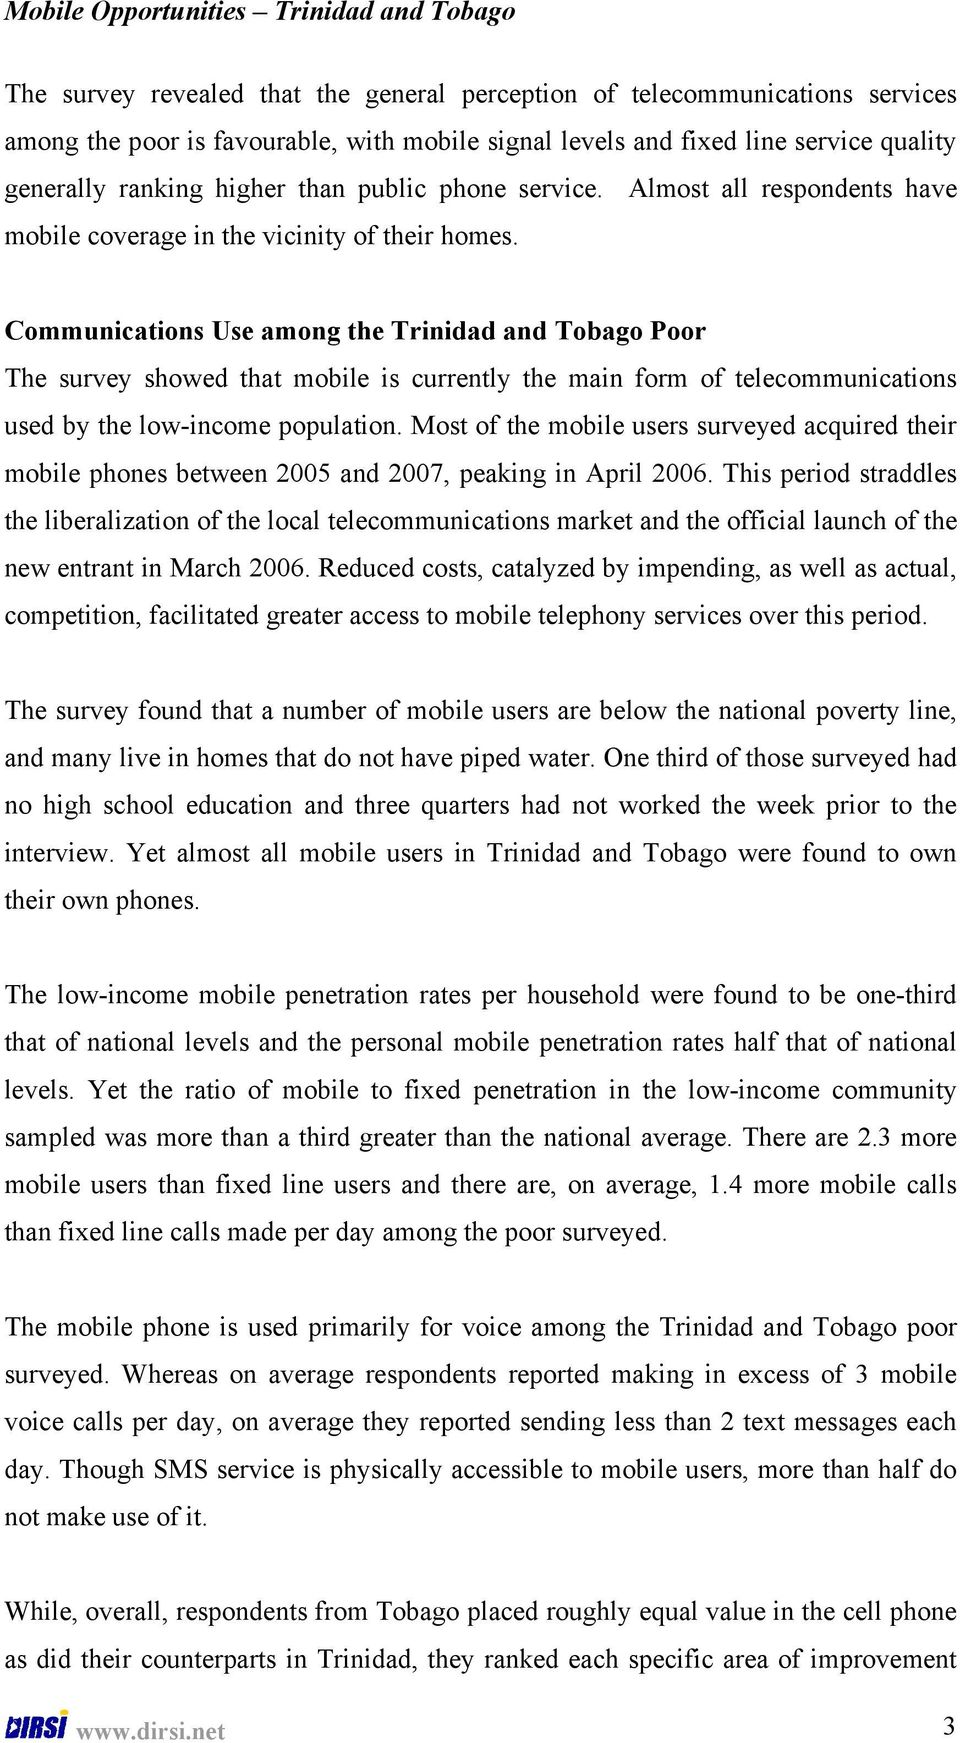 Communications Use among the Trinidad and Tobago Poor The survey showed that mobile is currently the main form of telecommunications used by the low-income population.